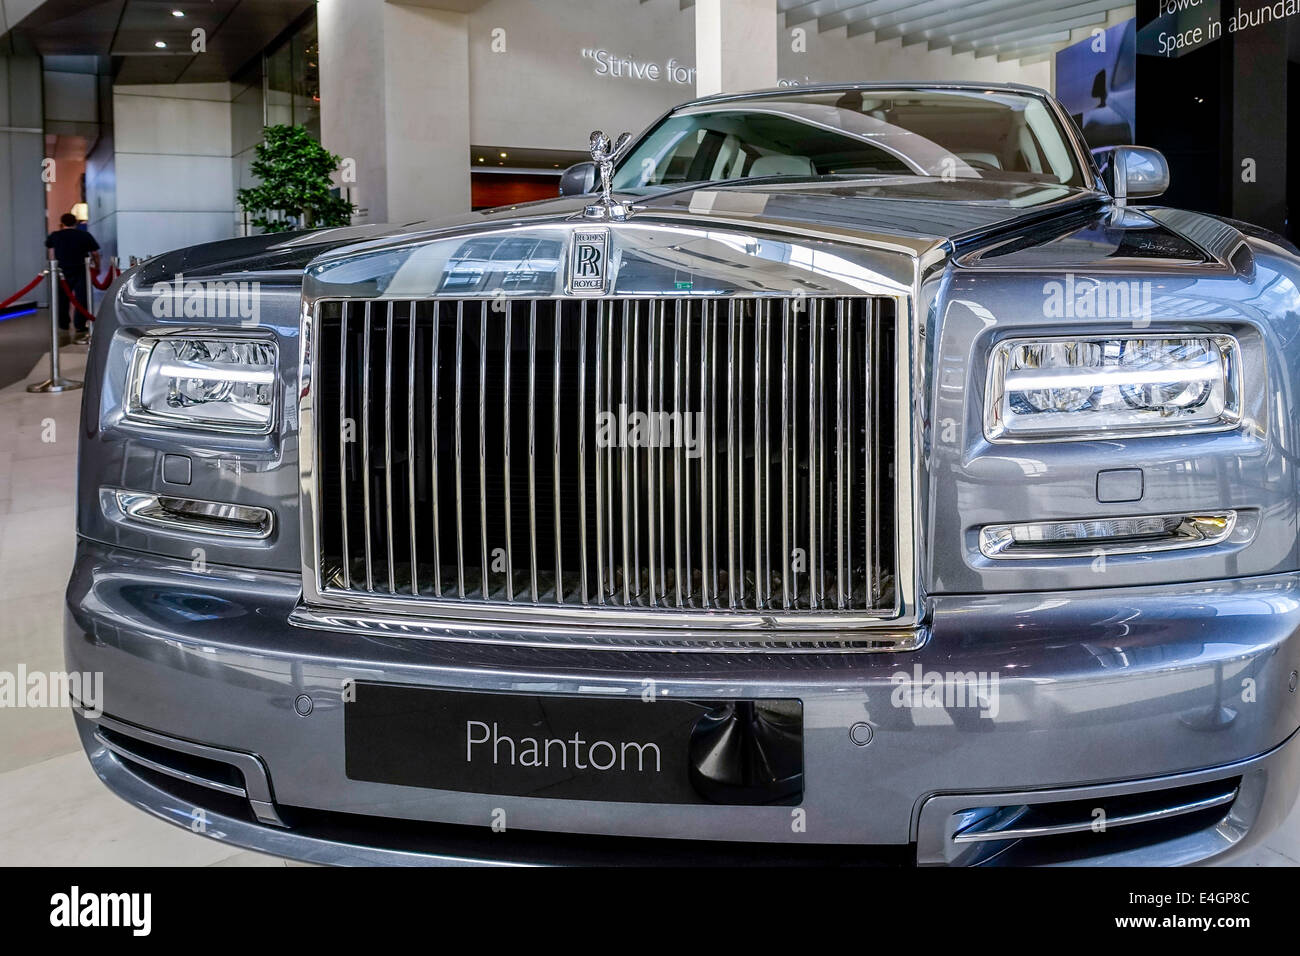 rolls royce hood ornament emily stock photos rolls royce. Black Bedroom Furniture Sets. Home Design Ideas